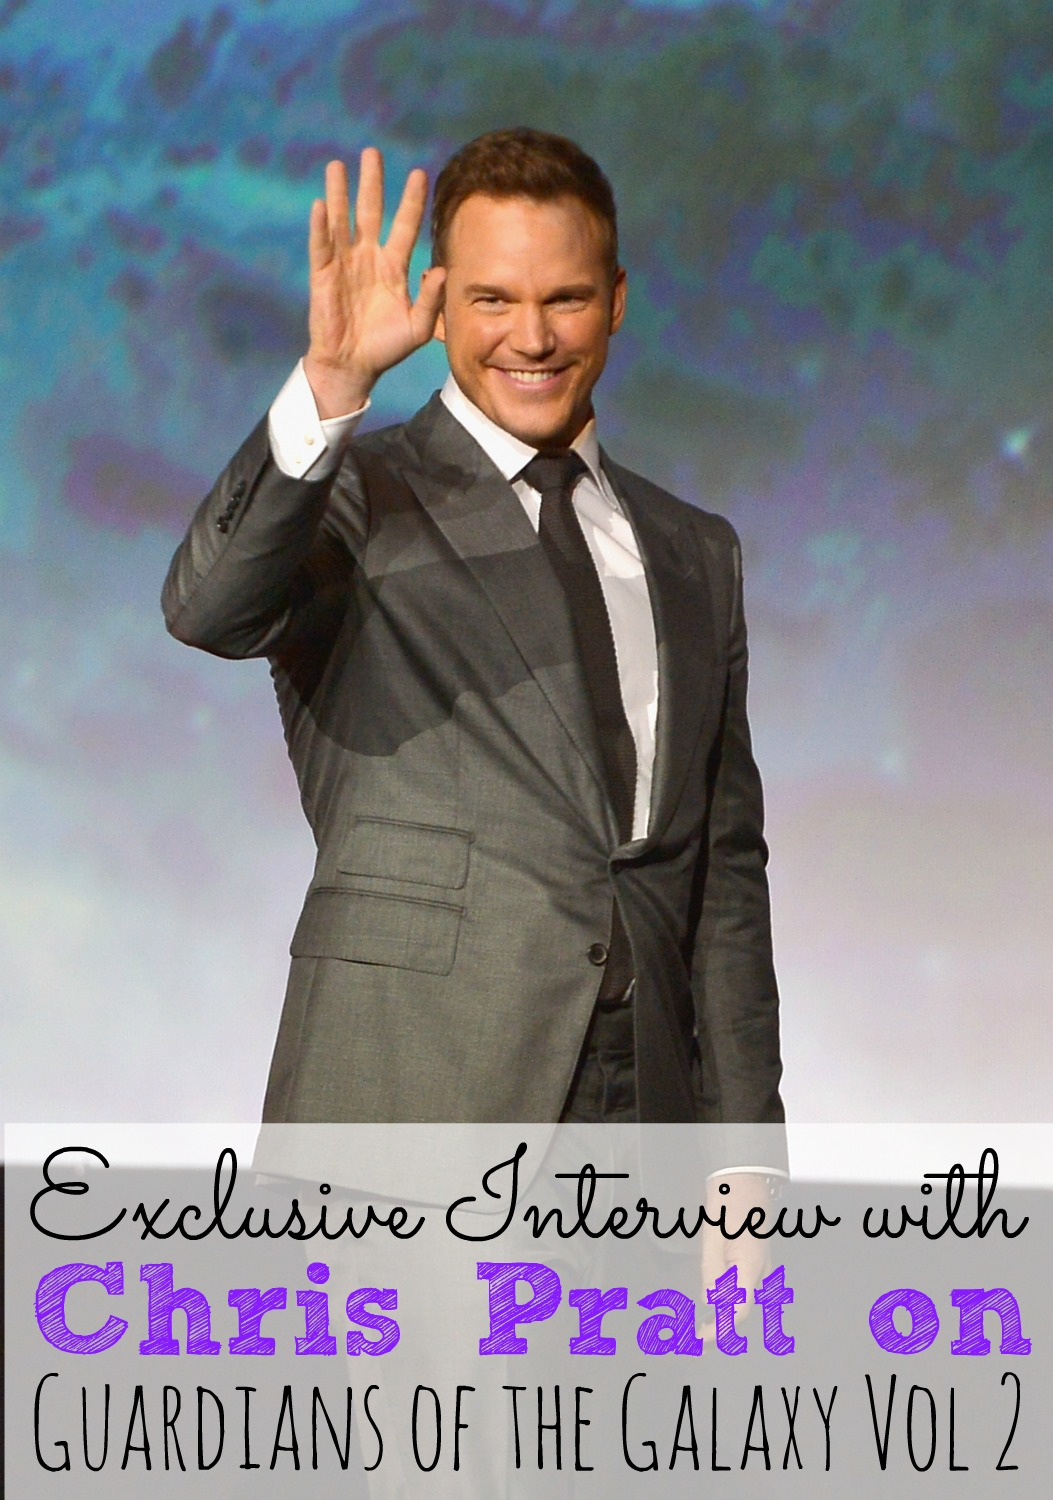 Exclusive Interview with Chris Pratt On Guardians of the Galaxy Vol 2